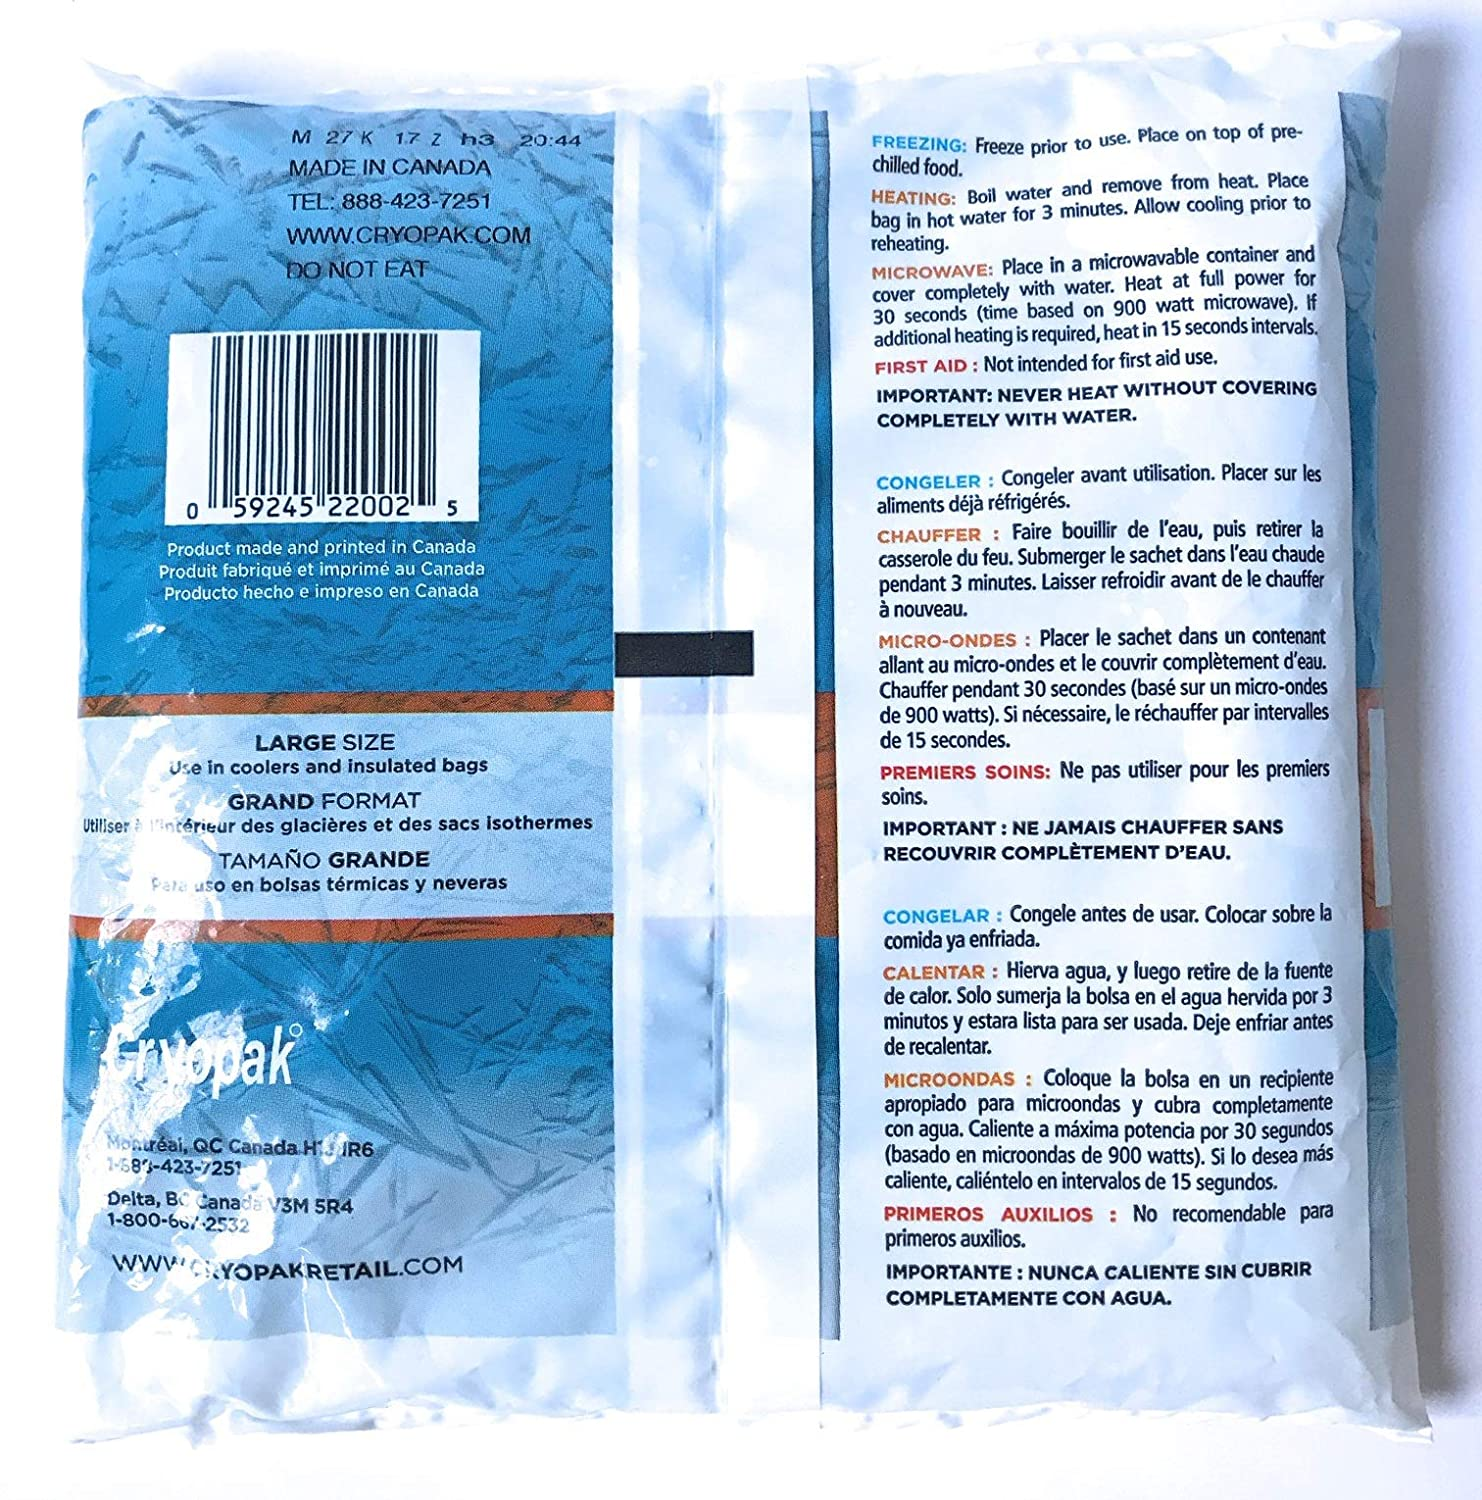 Amazon.com: Cryopak Reusable Soft Ice Packs - Pack of 2 ...